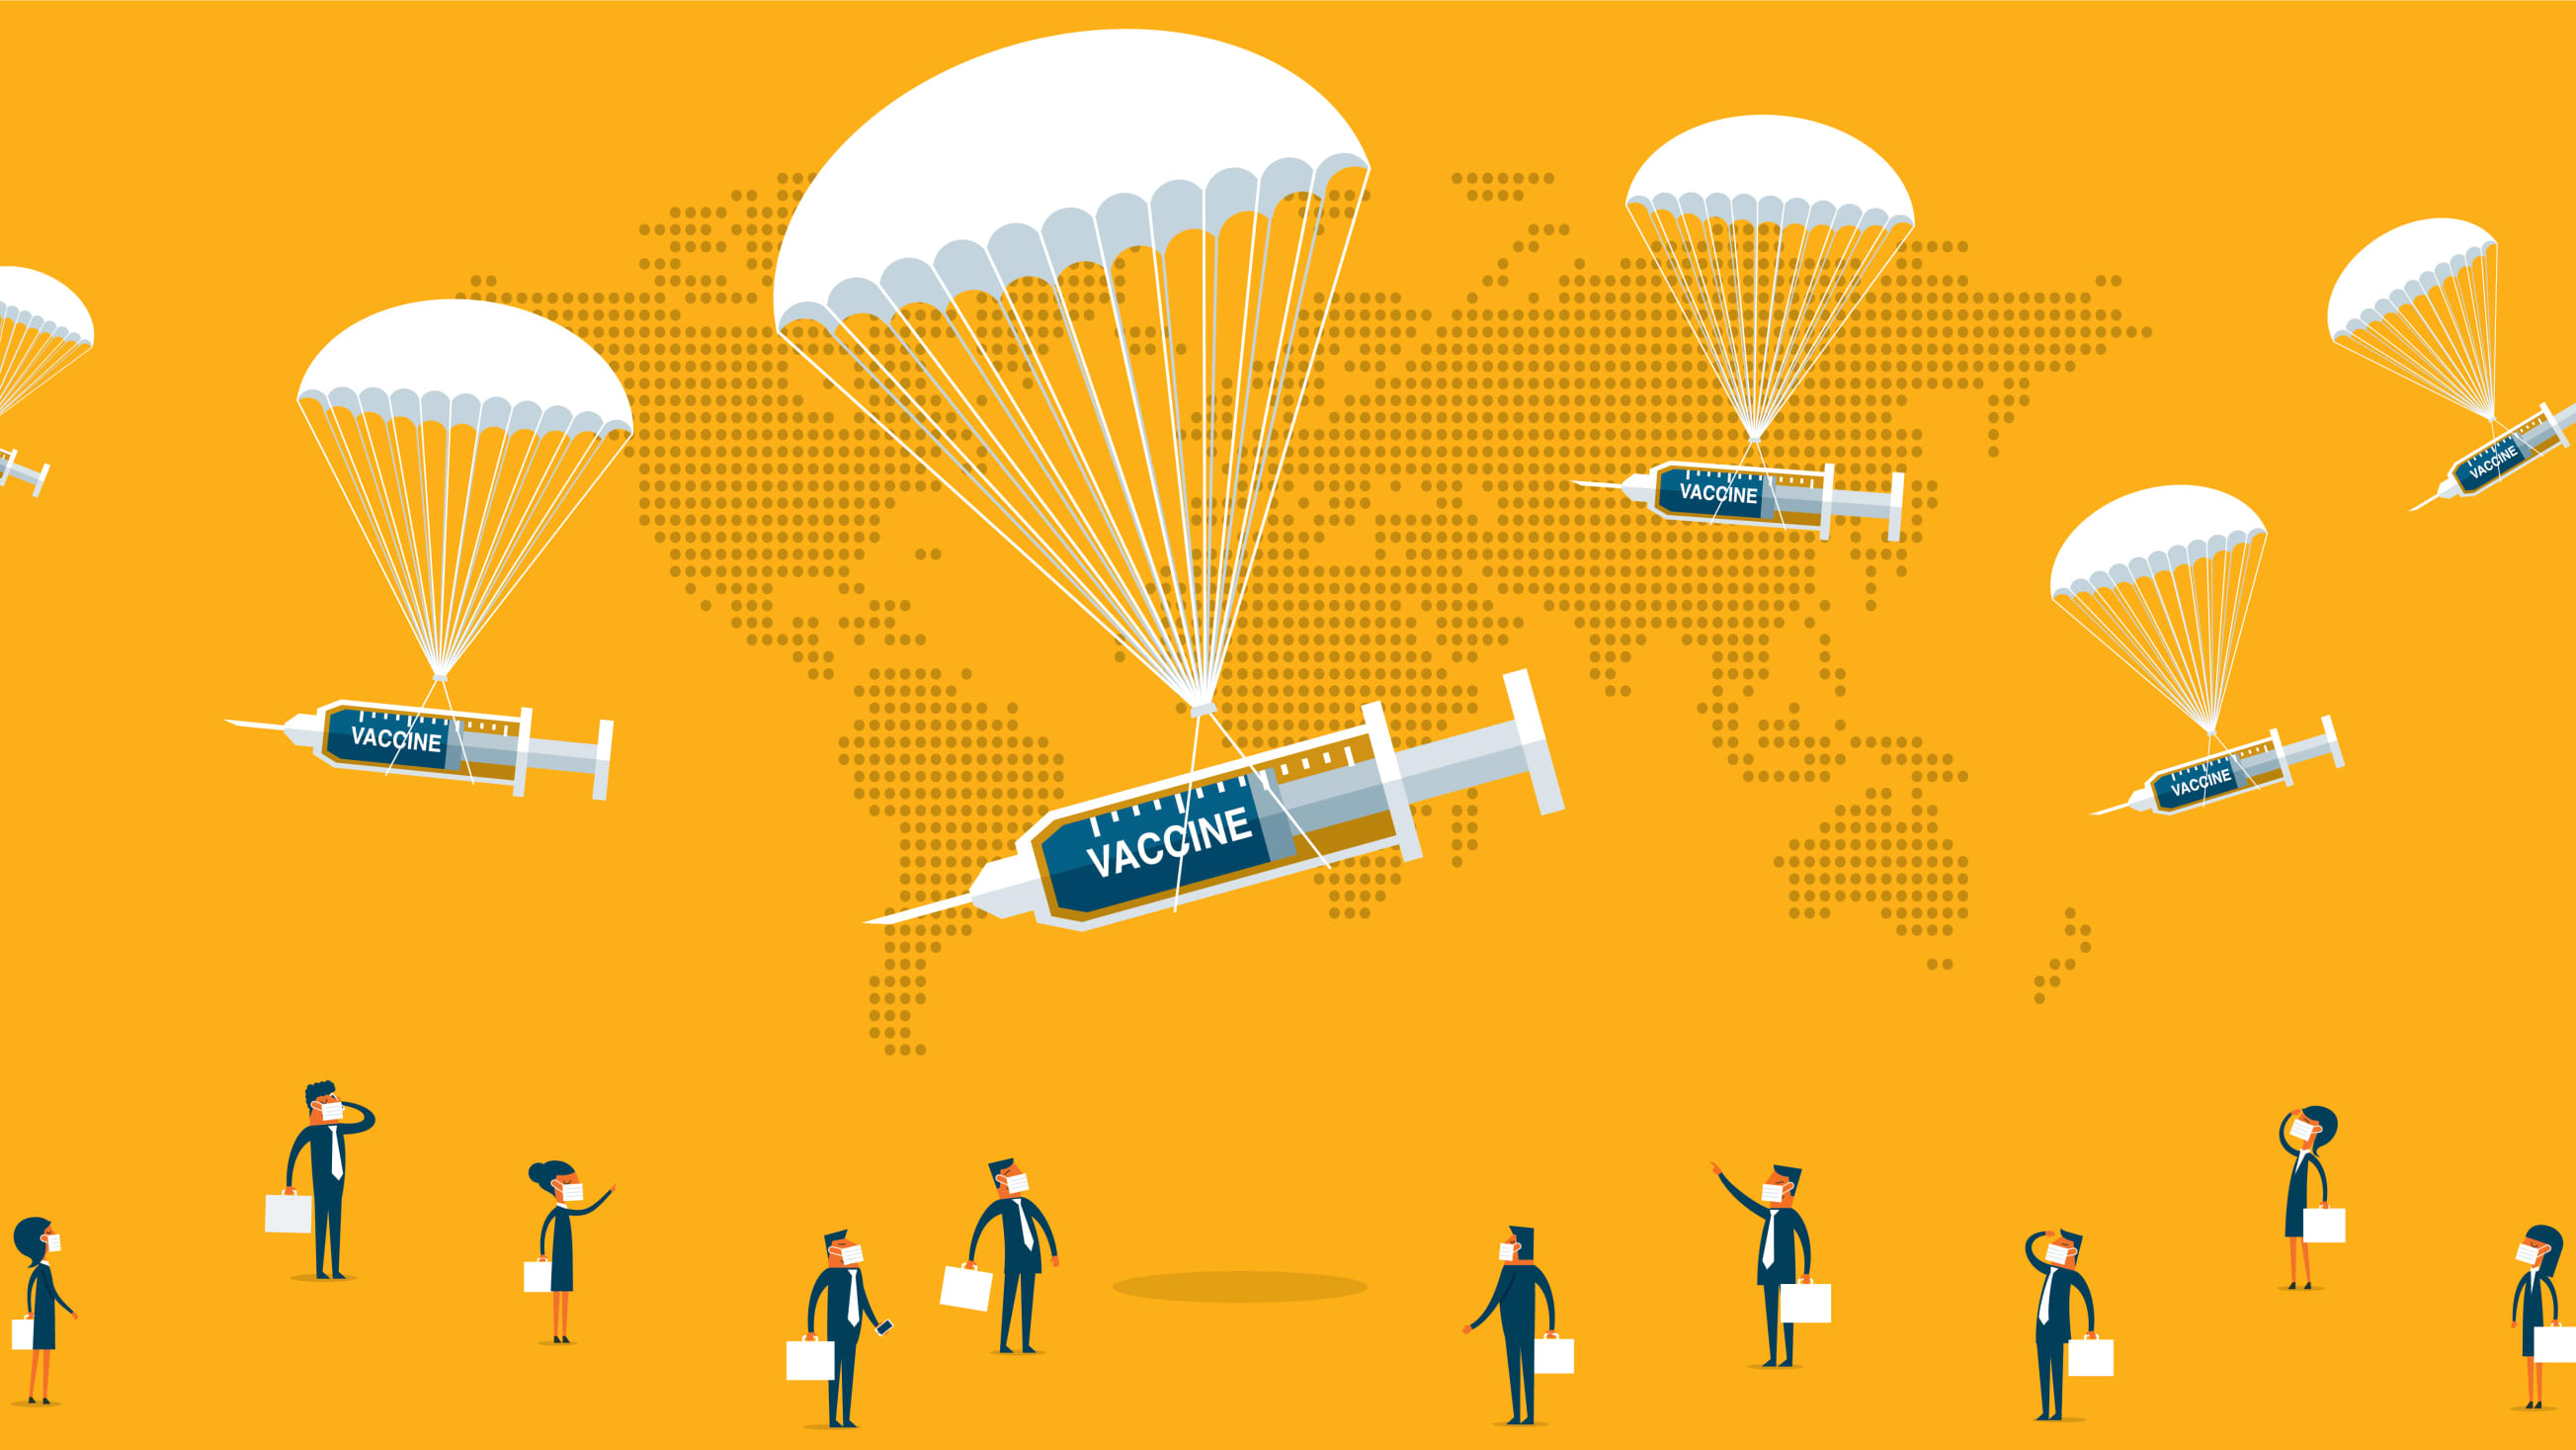 an illustration image of parachuting covid-19 vaccines dropping from the sky to recipients below